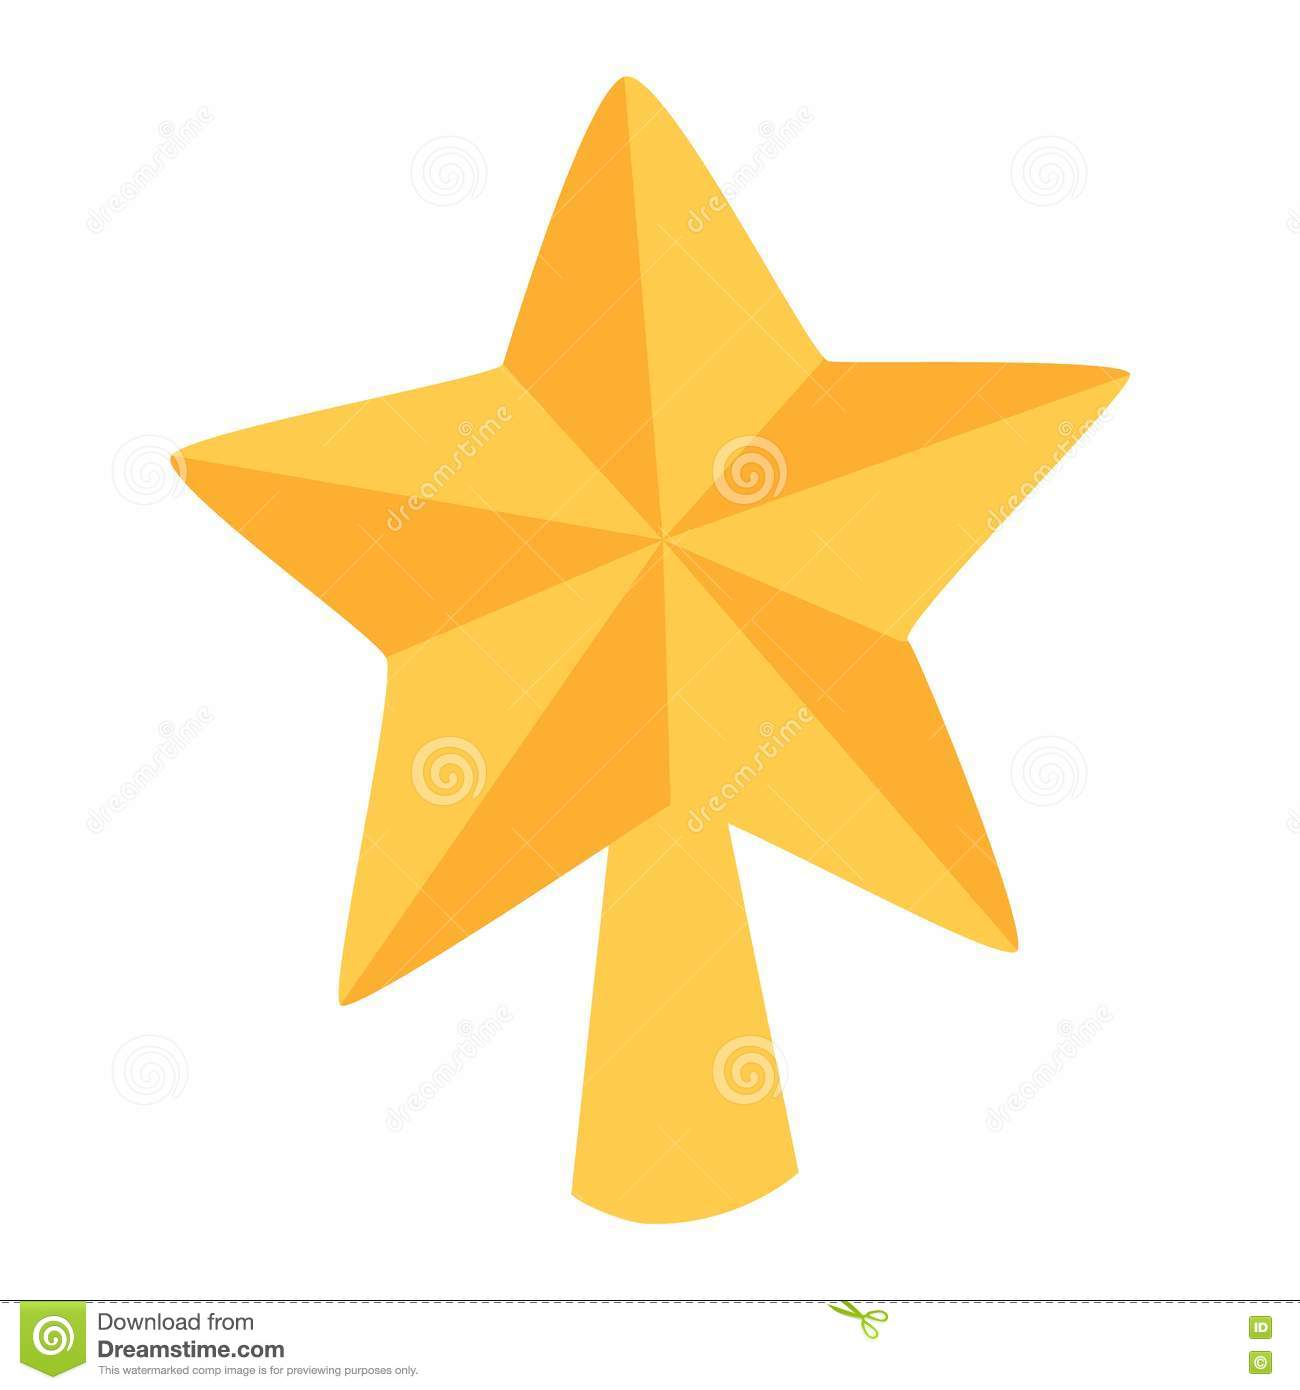 Star For A Christmas Tree: Christmas Star Tree Symbol Vector Stock Vector